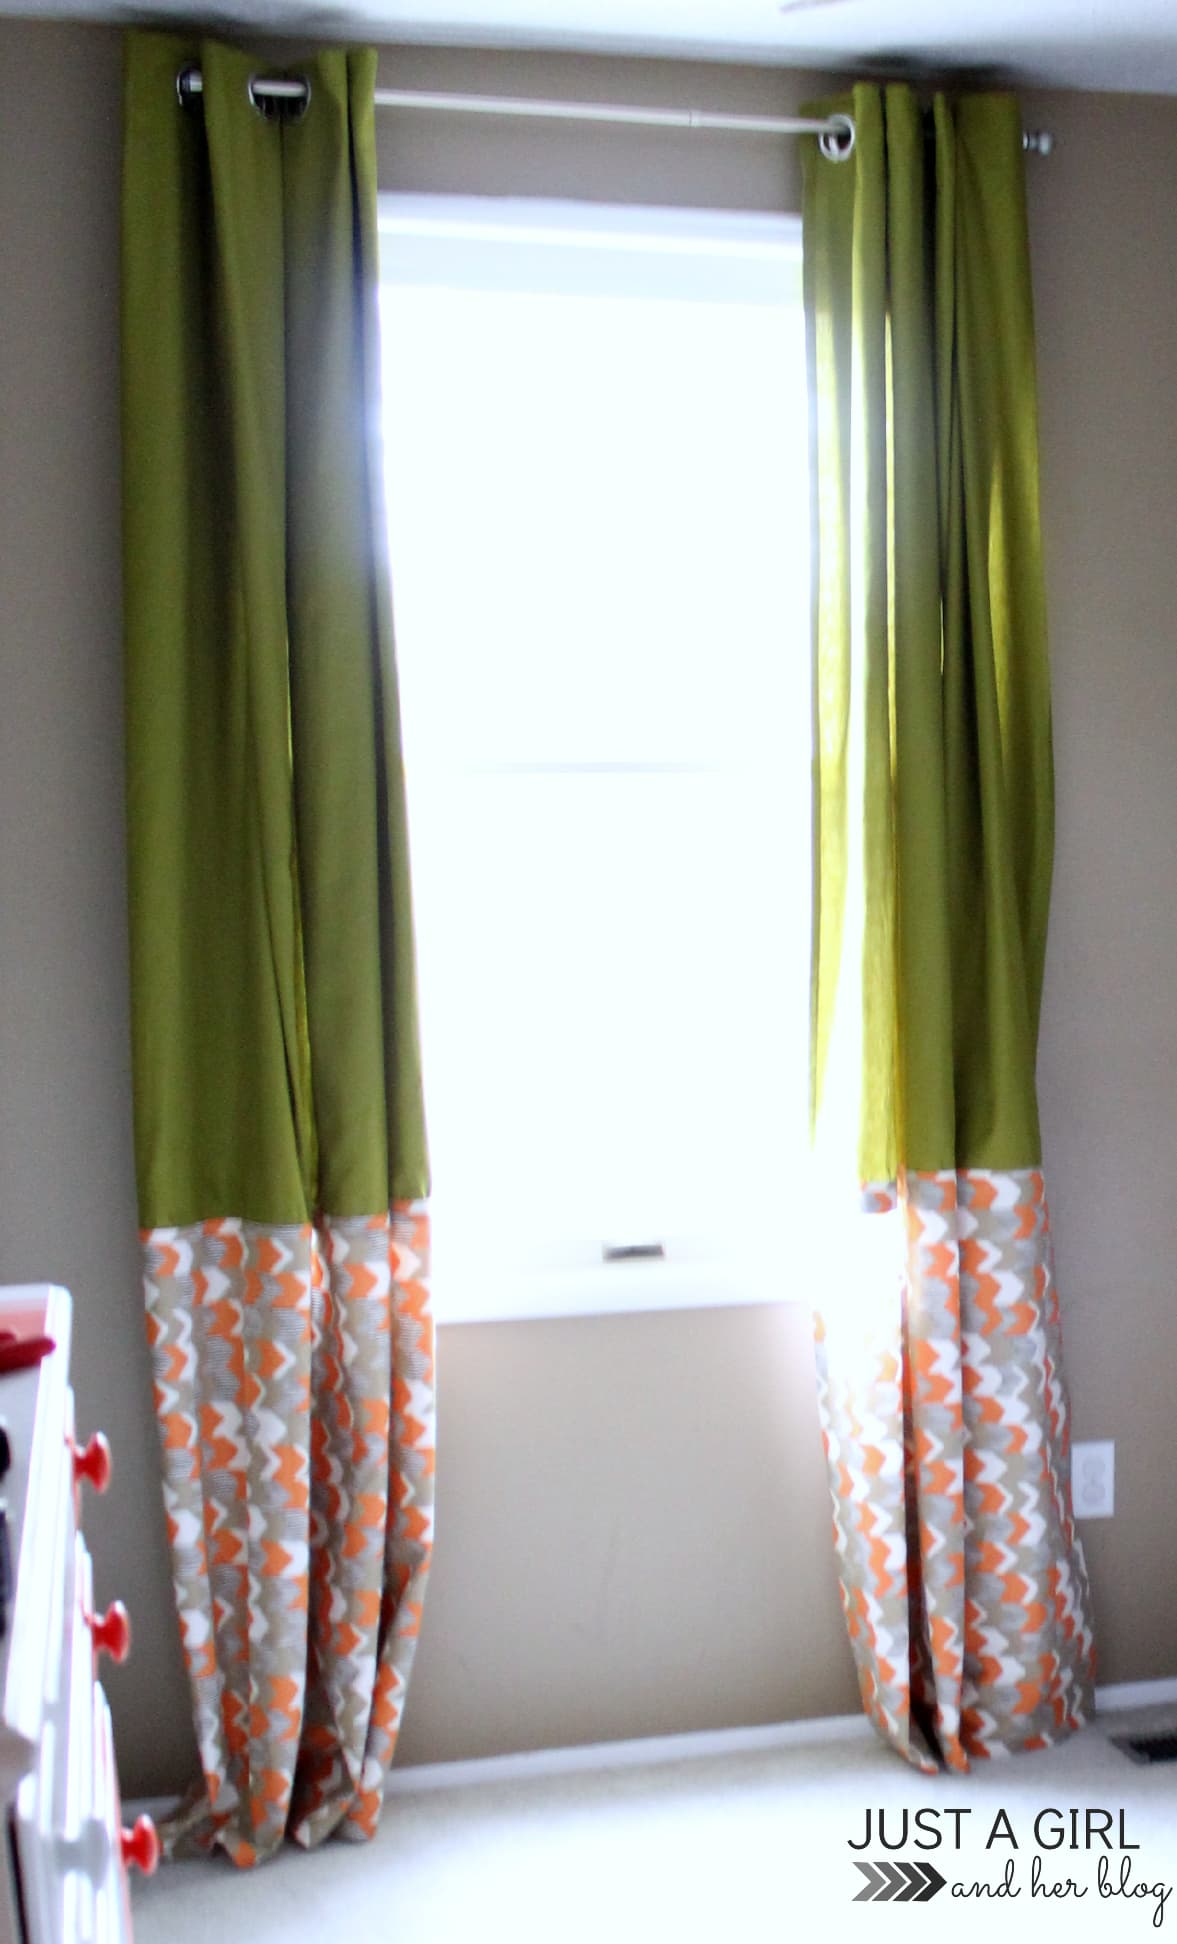 IKEA Hack: No-Sew Curtains - Just a Girl and Her Blog